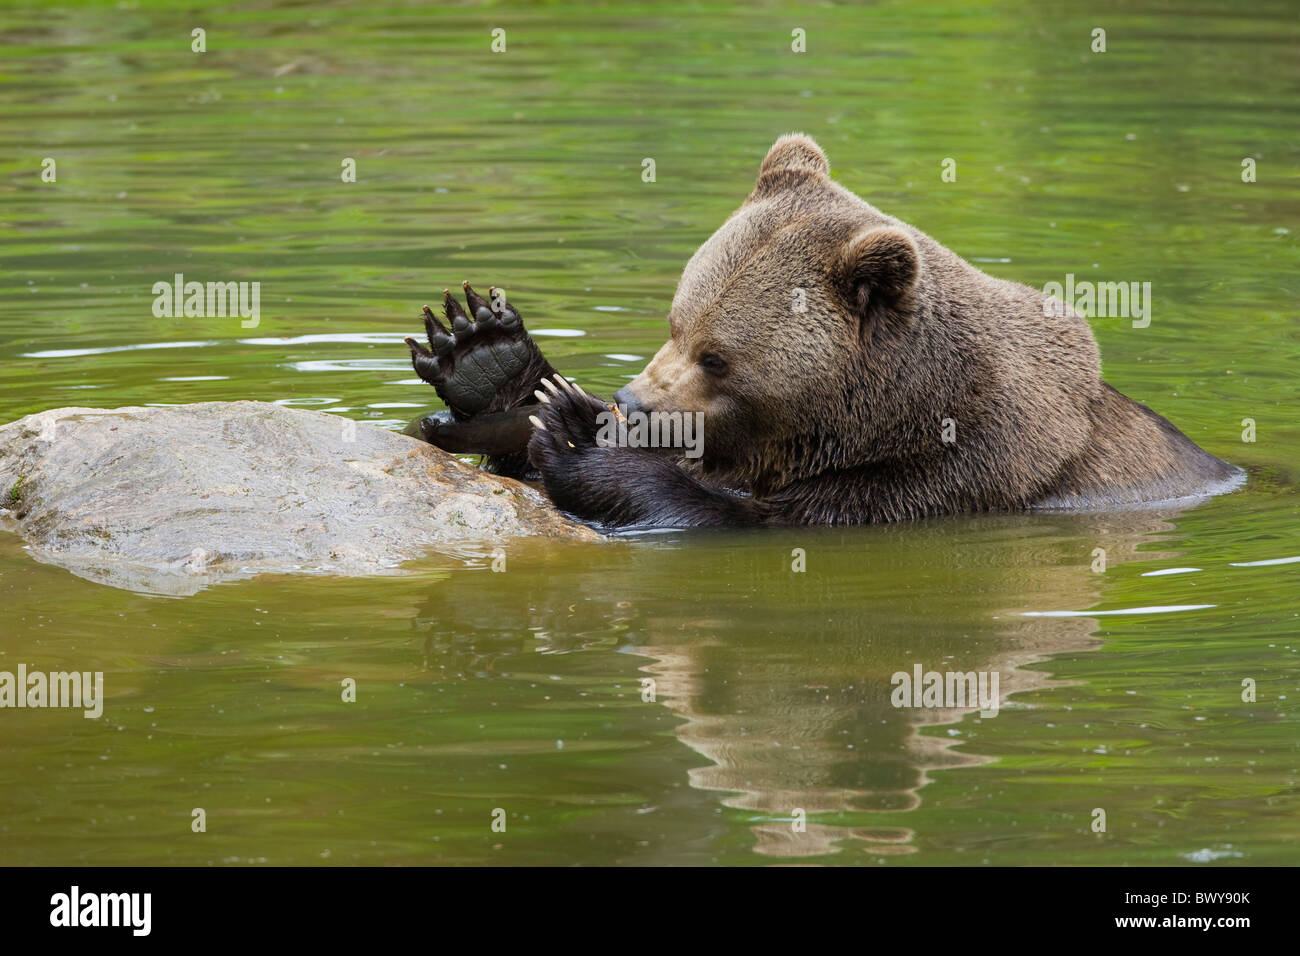 Brown Bear in Water, Bavarian Forest National Park, Bavaria, Germany Stock Photo